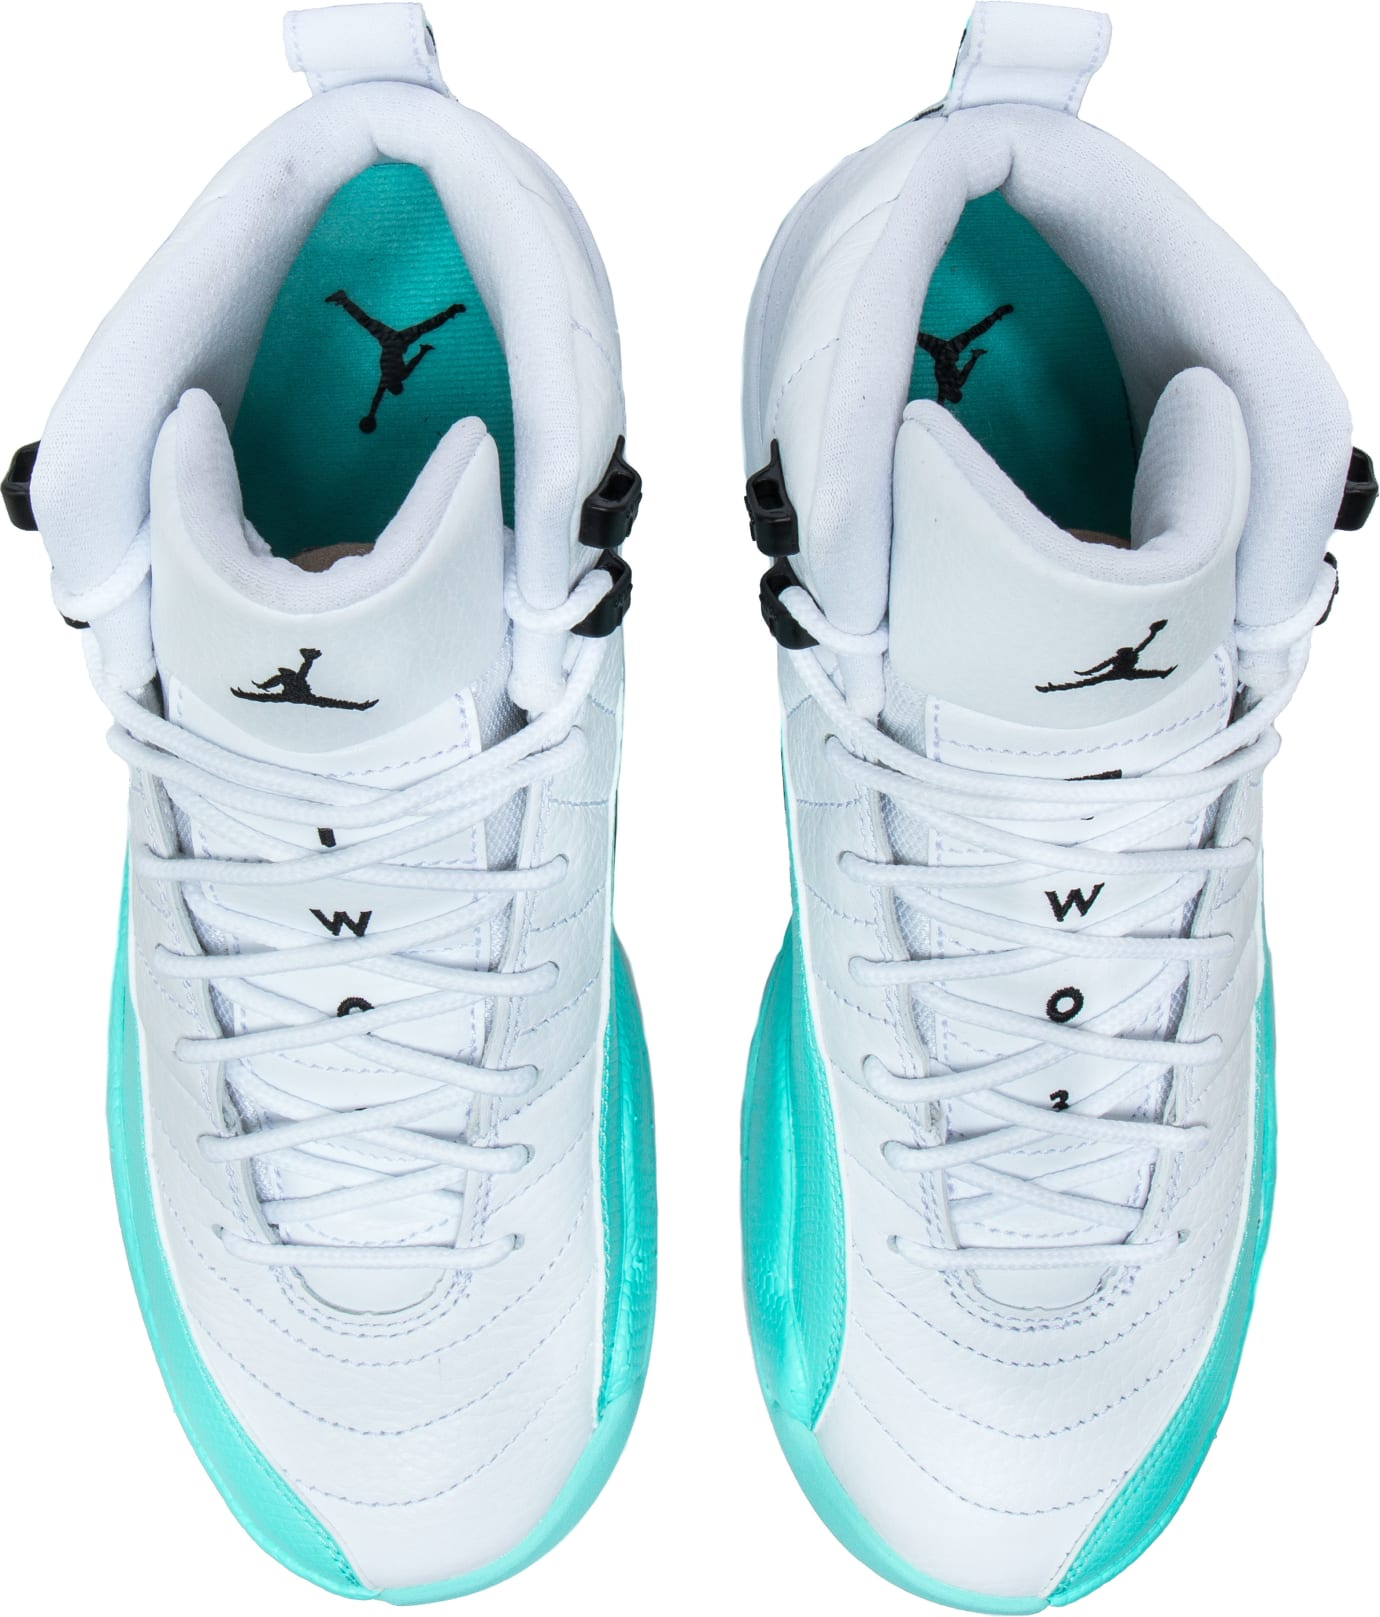 b8a4227f02e Image via Shoe Palace Air Jordan 12 XII Retro GG  White Light Aqua Black   510815-